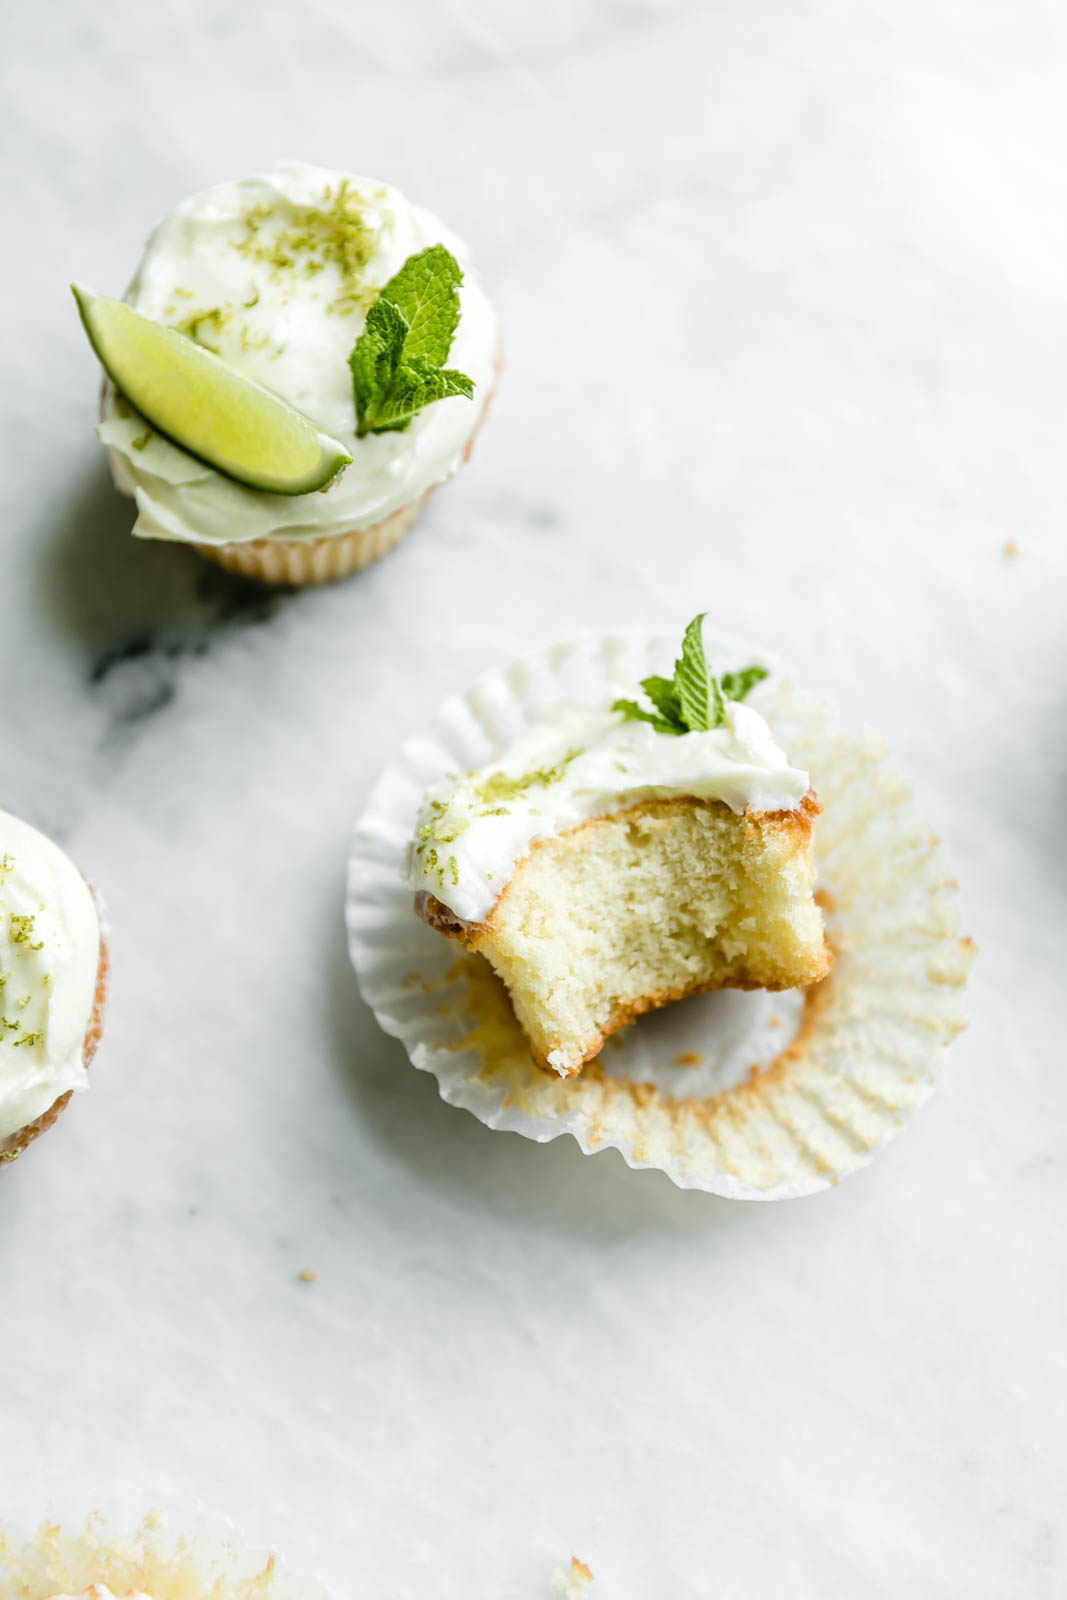 What could be better than boozy Lemon Mojito Cupcakes with a cream cheese frosting, mint, and lime zest? The answer is nothing, friends. Nothing.